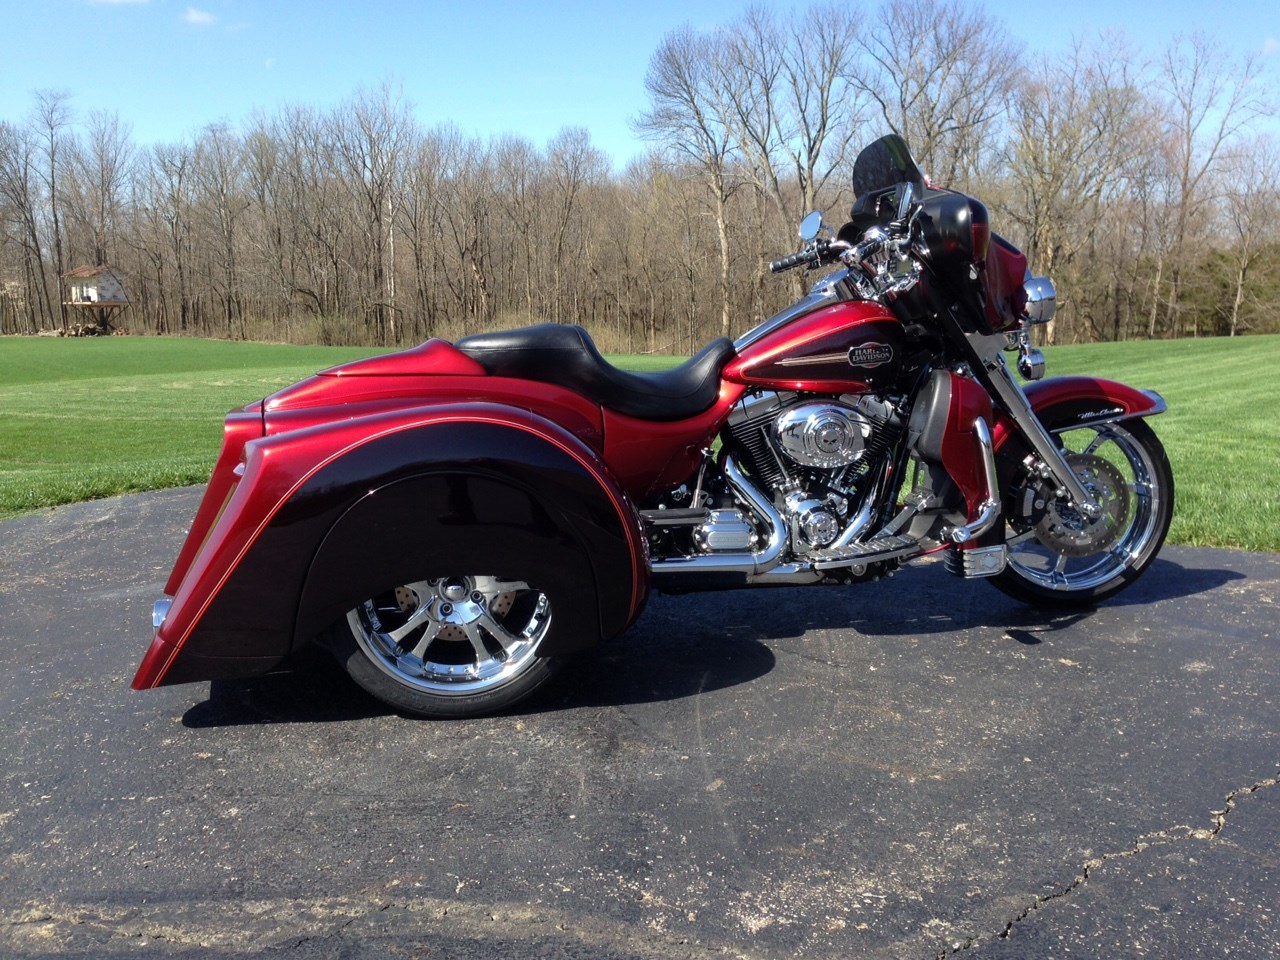 2012 harley davidson custom trike candy sun glow red and deep merlow with tones of flake just. Black Bedroom Furniture Sets. Home Design Ideas